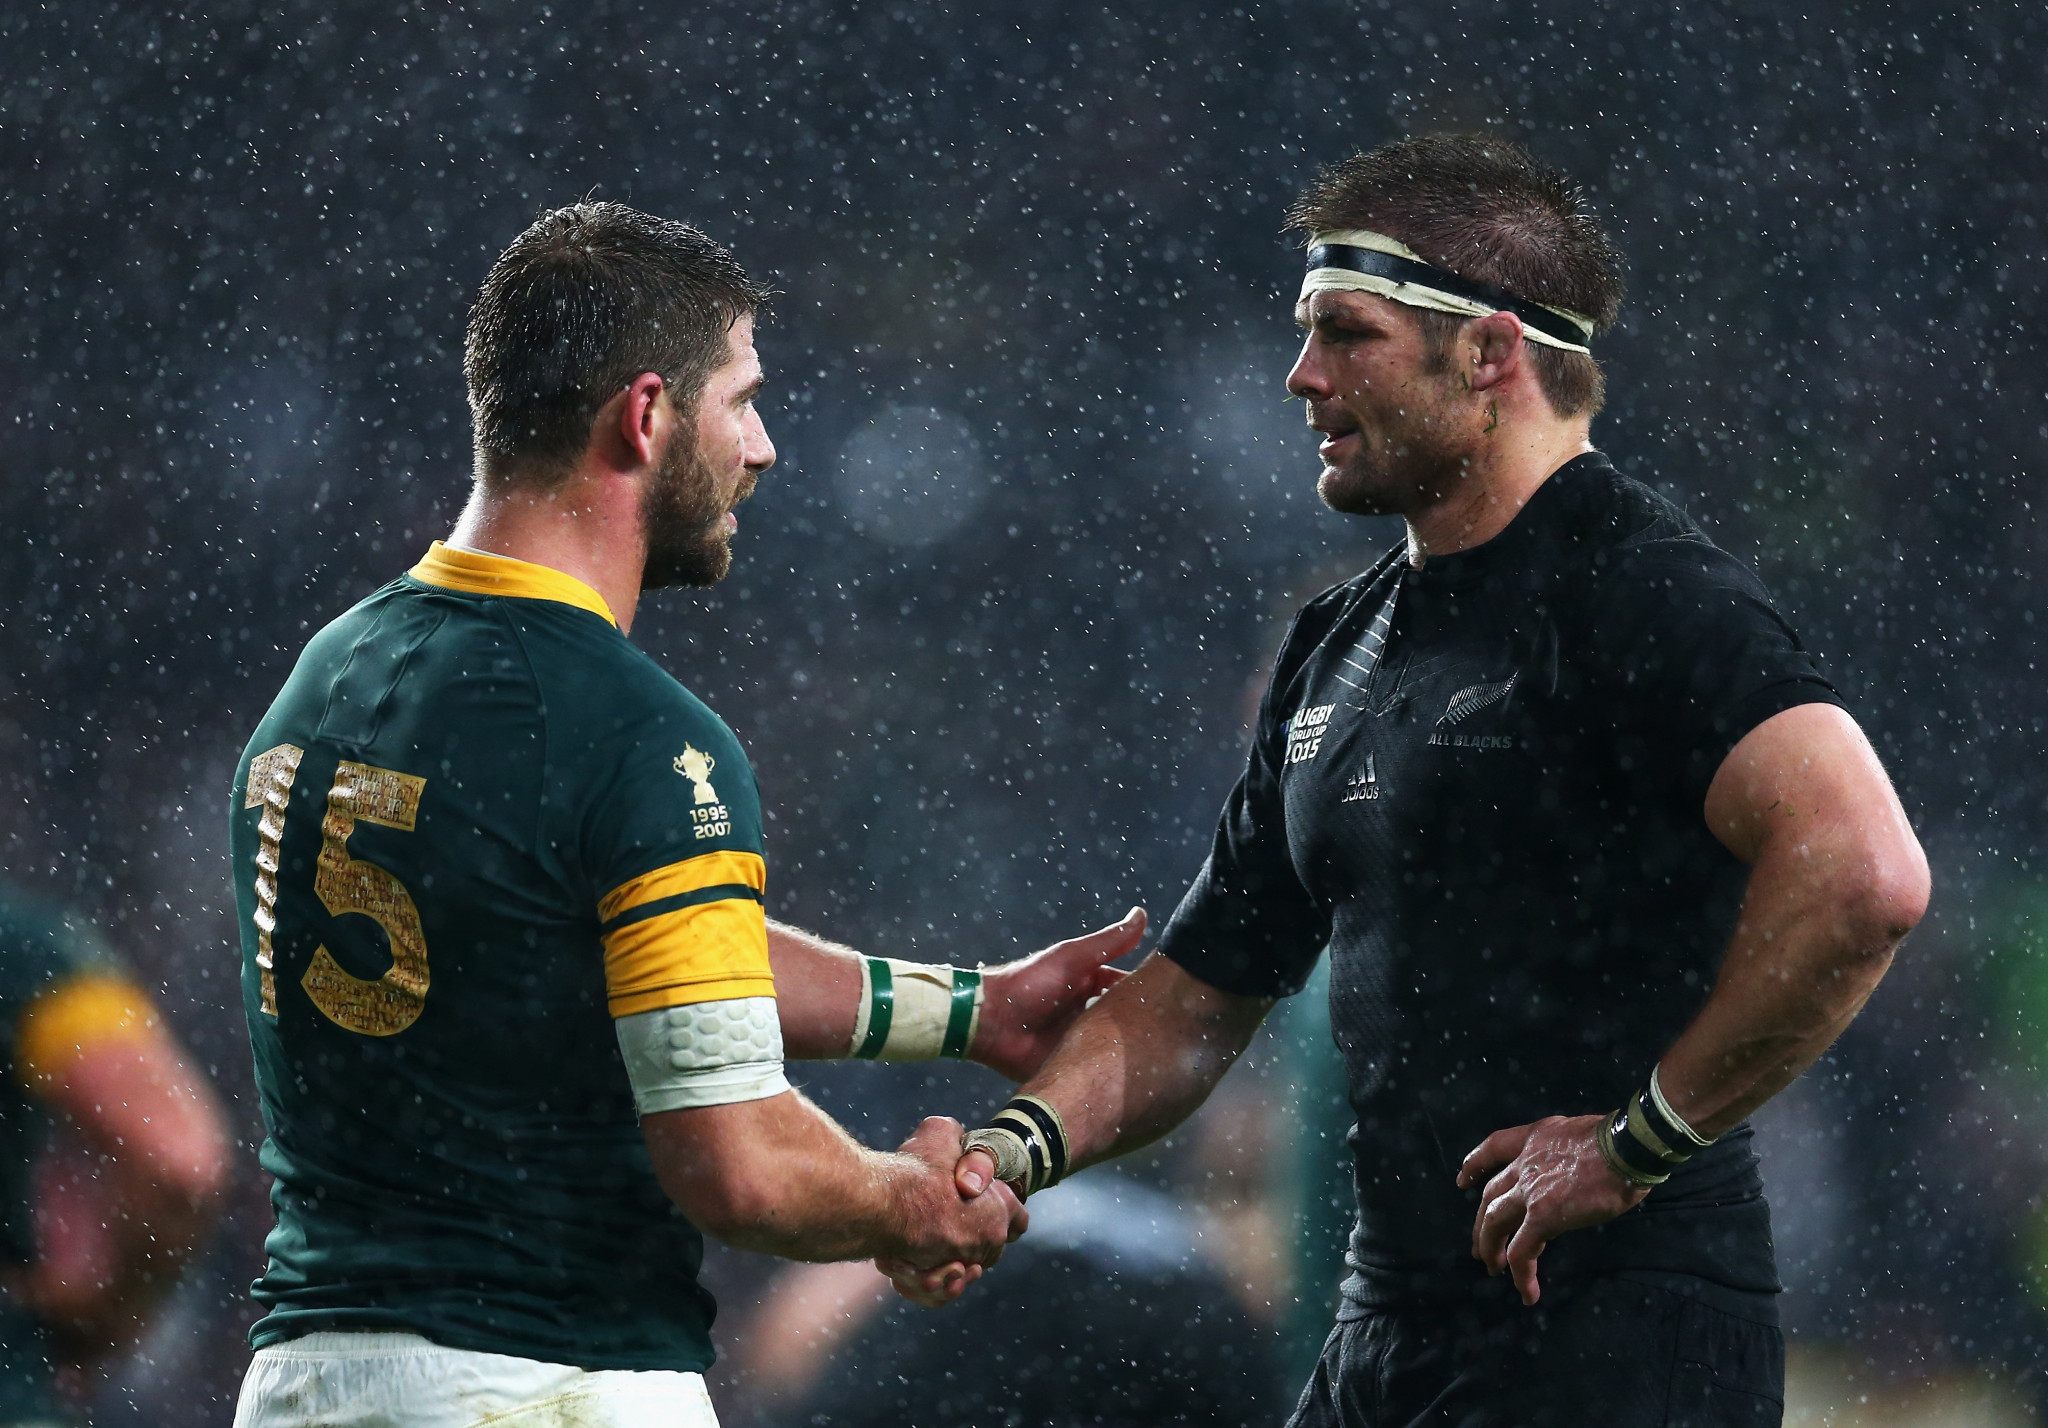 The Rugby World Cup will begin next September with New Zealand seeking to retain their title ©World Rugby